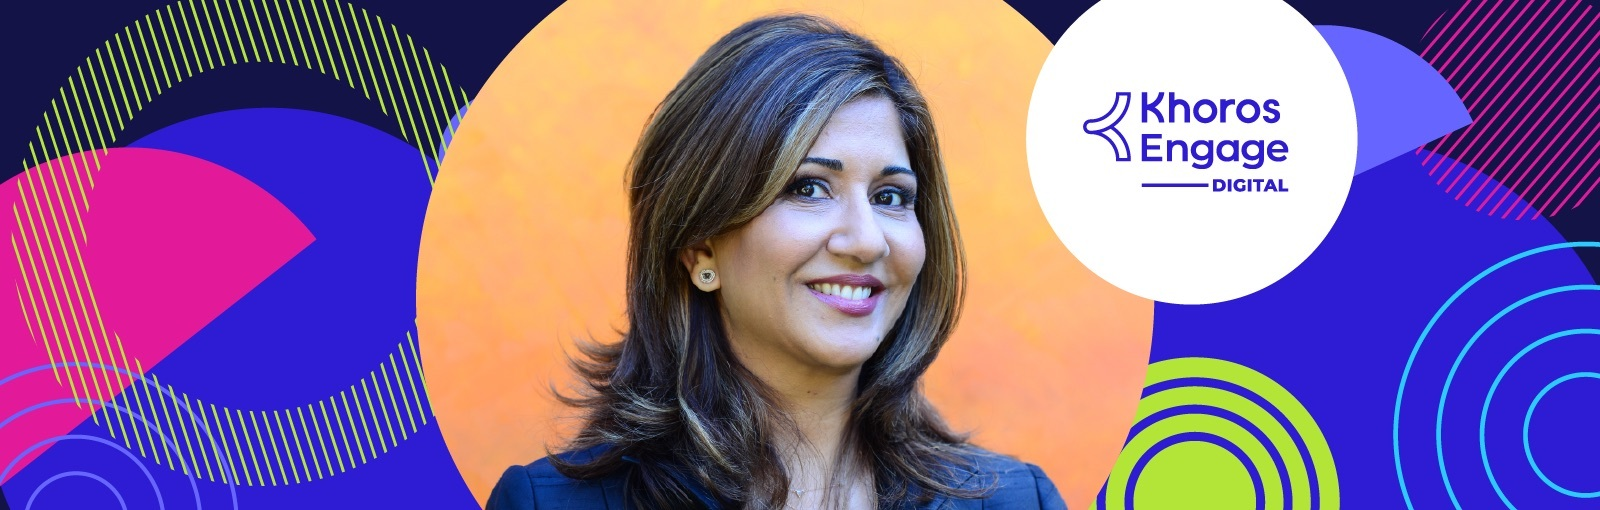 The future of engagement: Nilofer Merchant to deliver keynote at Khoros Engage